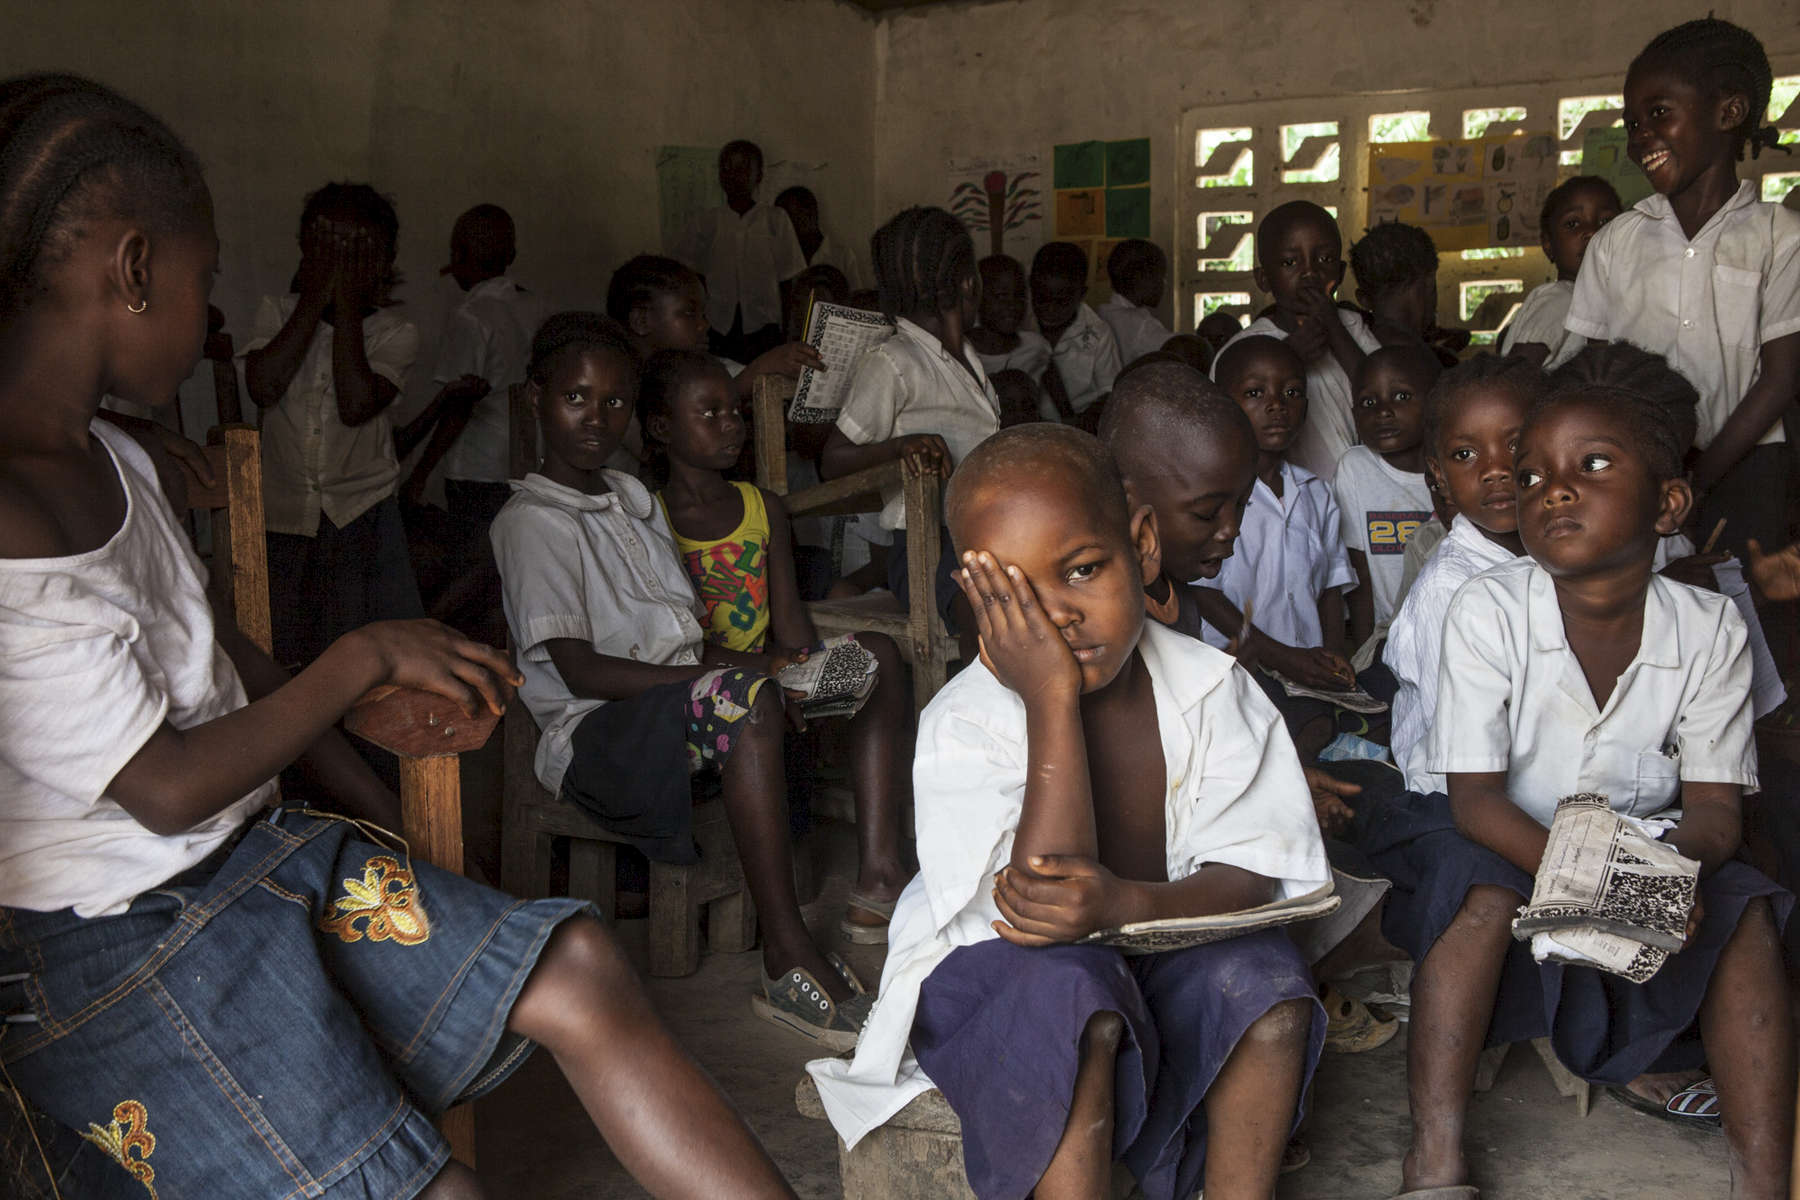 Students in an unsupervised classroom after the teacher went home sick at the Passama Public School in Gbarnga, Bong County, Liberia